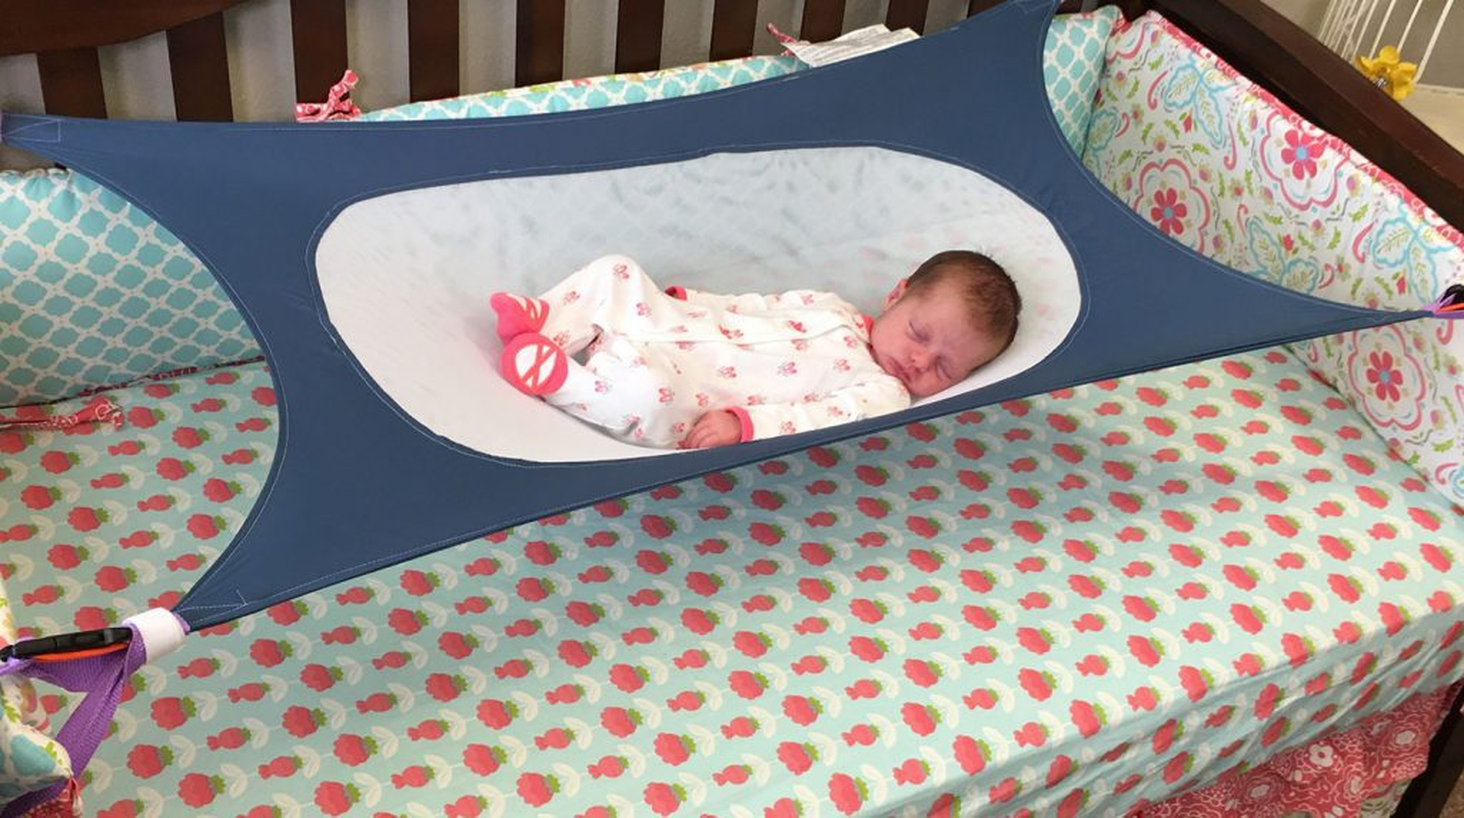 Baby Bed Infant Baby Hammock For Newborn Kid Sleeping Bed Safe Detachable Baby Cot Crib Elastic Hammock With Adjustable Net Crib